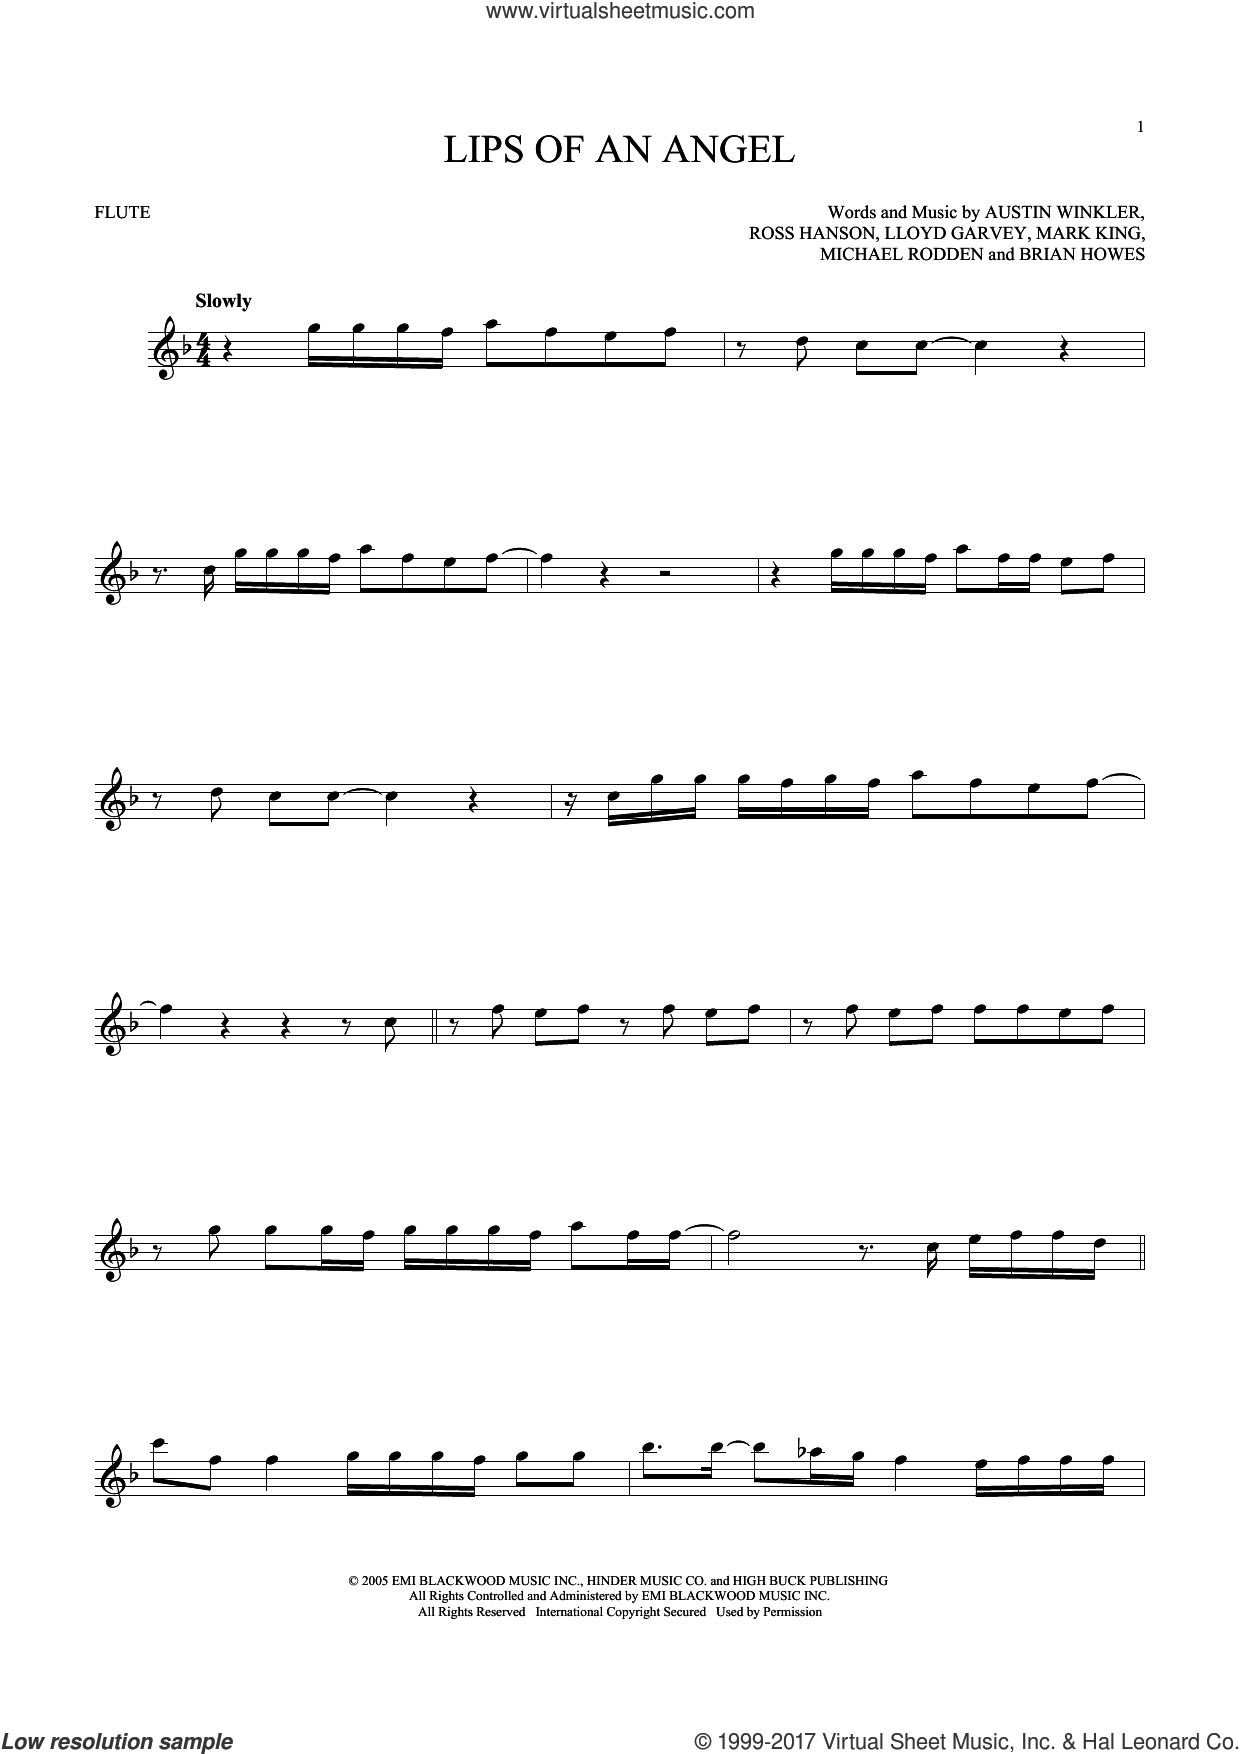 Lips Of An Angel sheet music for flute solo by Hinder, Jack Ingram, Austin Winkler, Brian Howes, Lloyd Garvey, Mark King, Michael Rodden and Ross Hanson, intermediate skill level